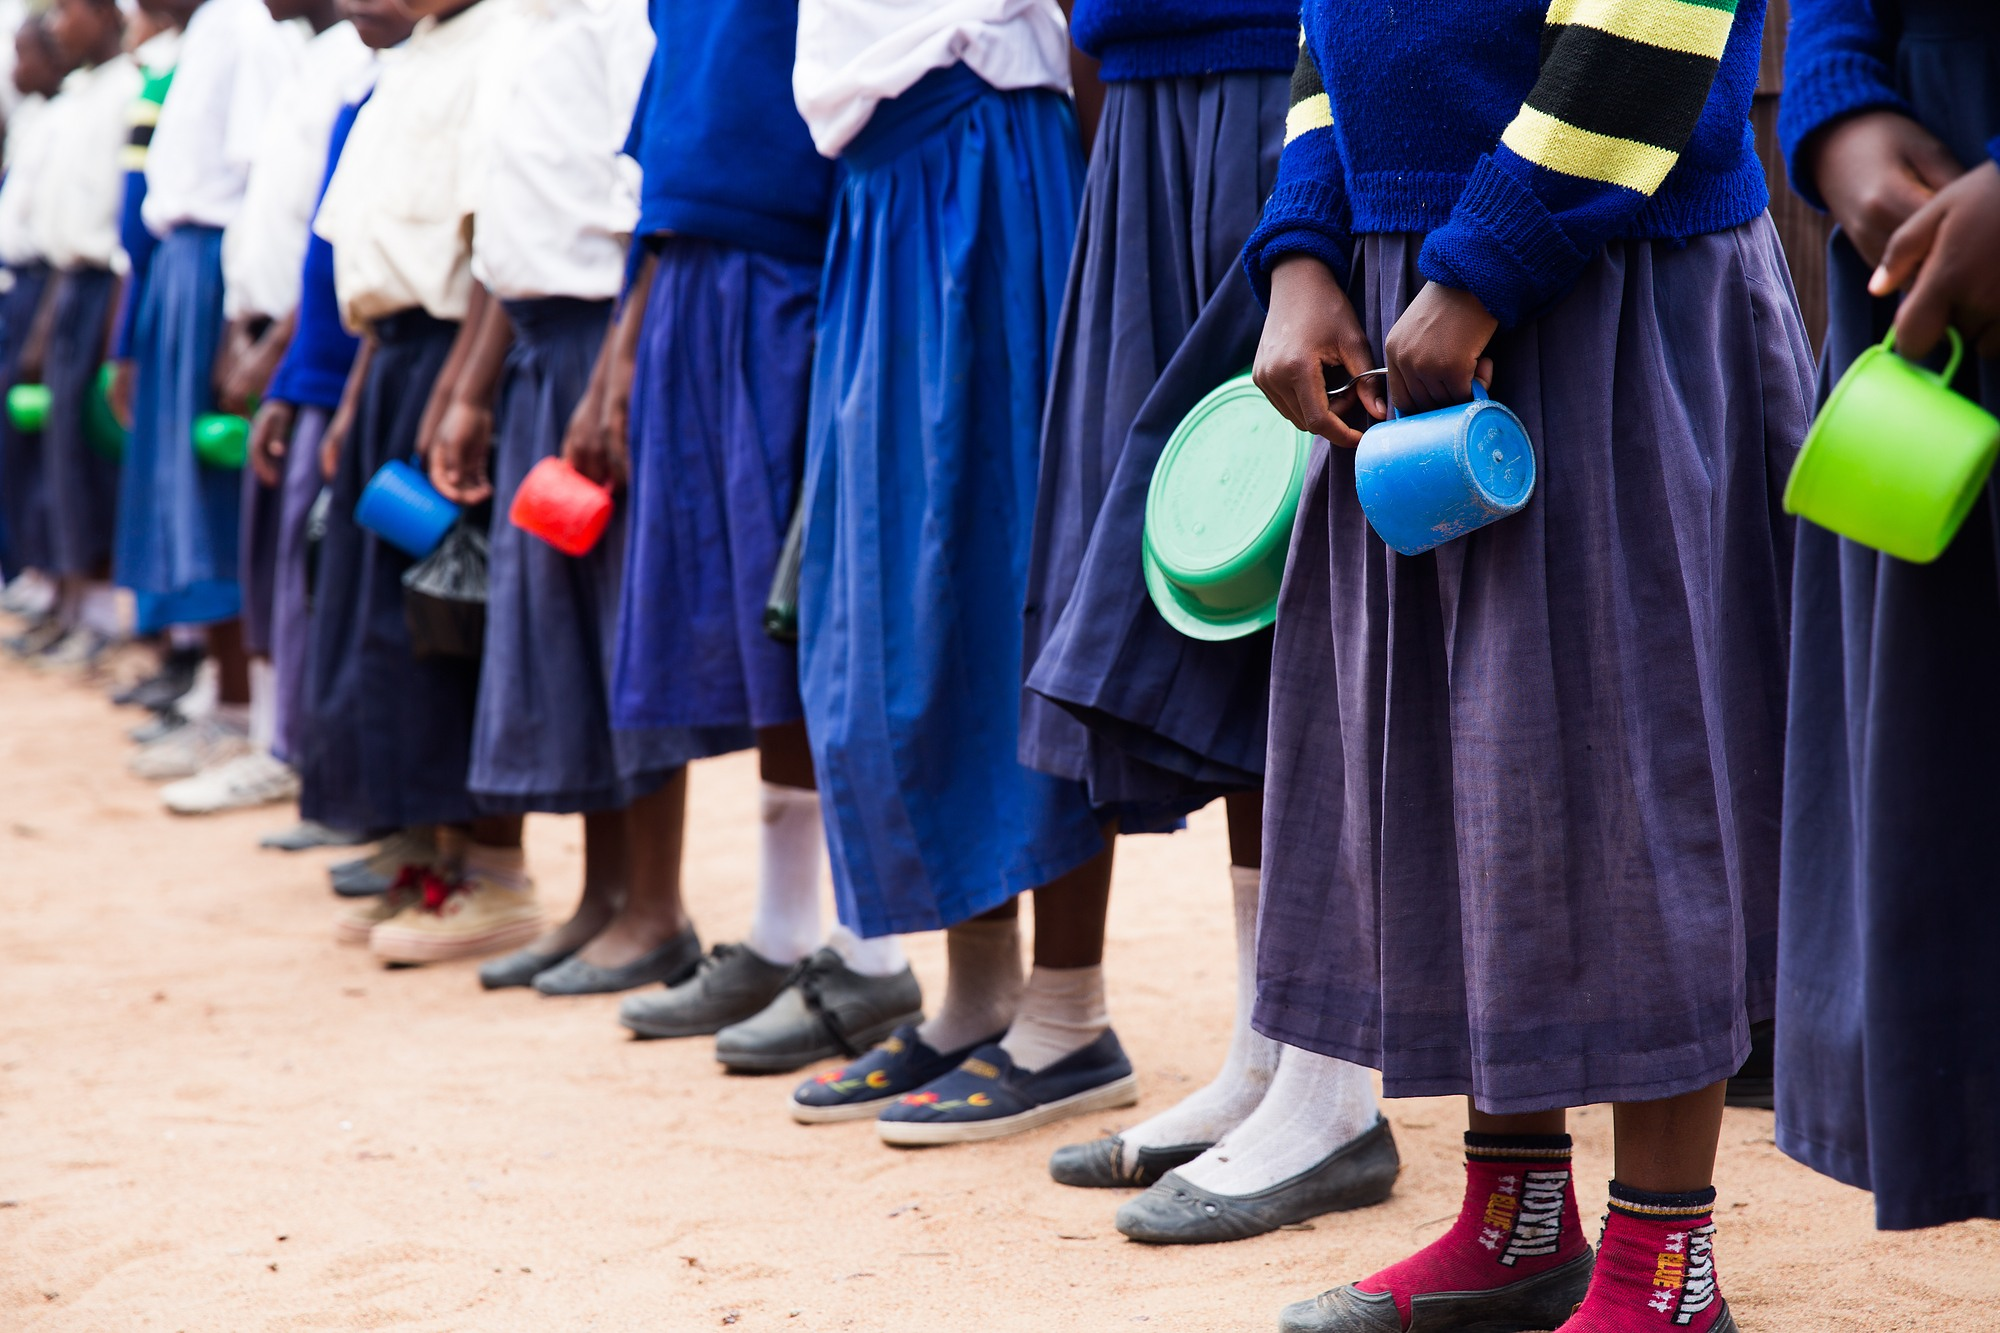 Students lined up, seen from the waist down, holding bowls and cups in their hands